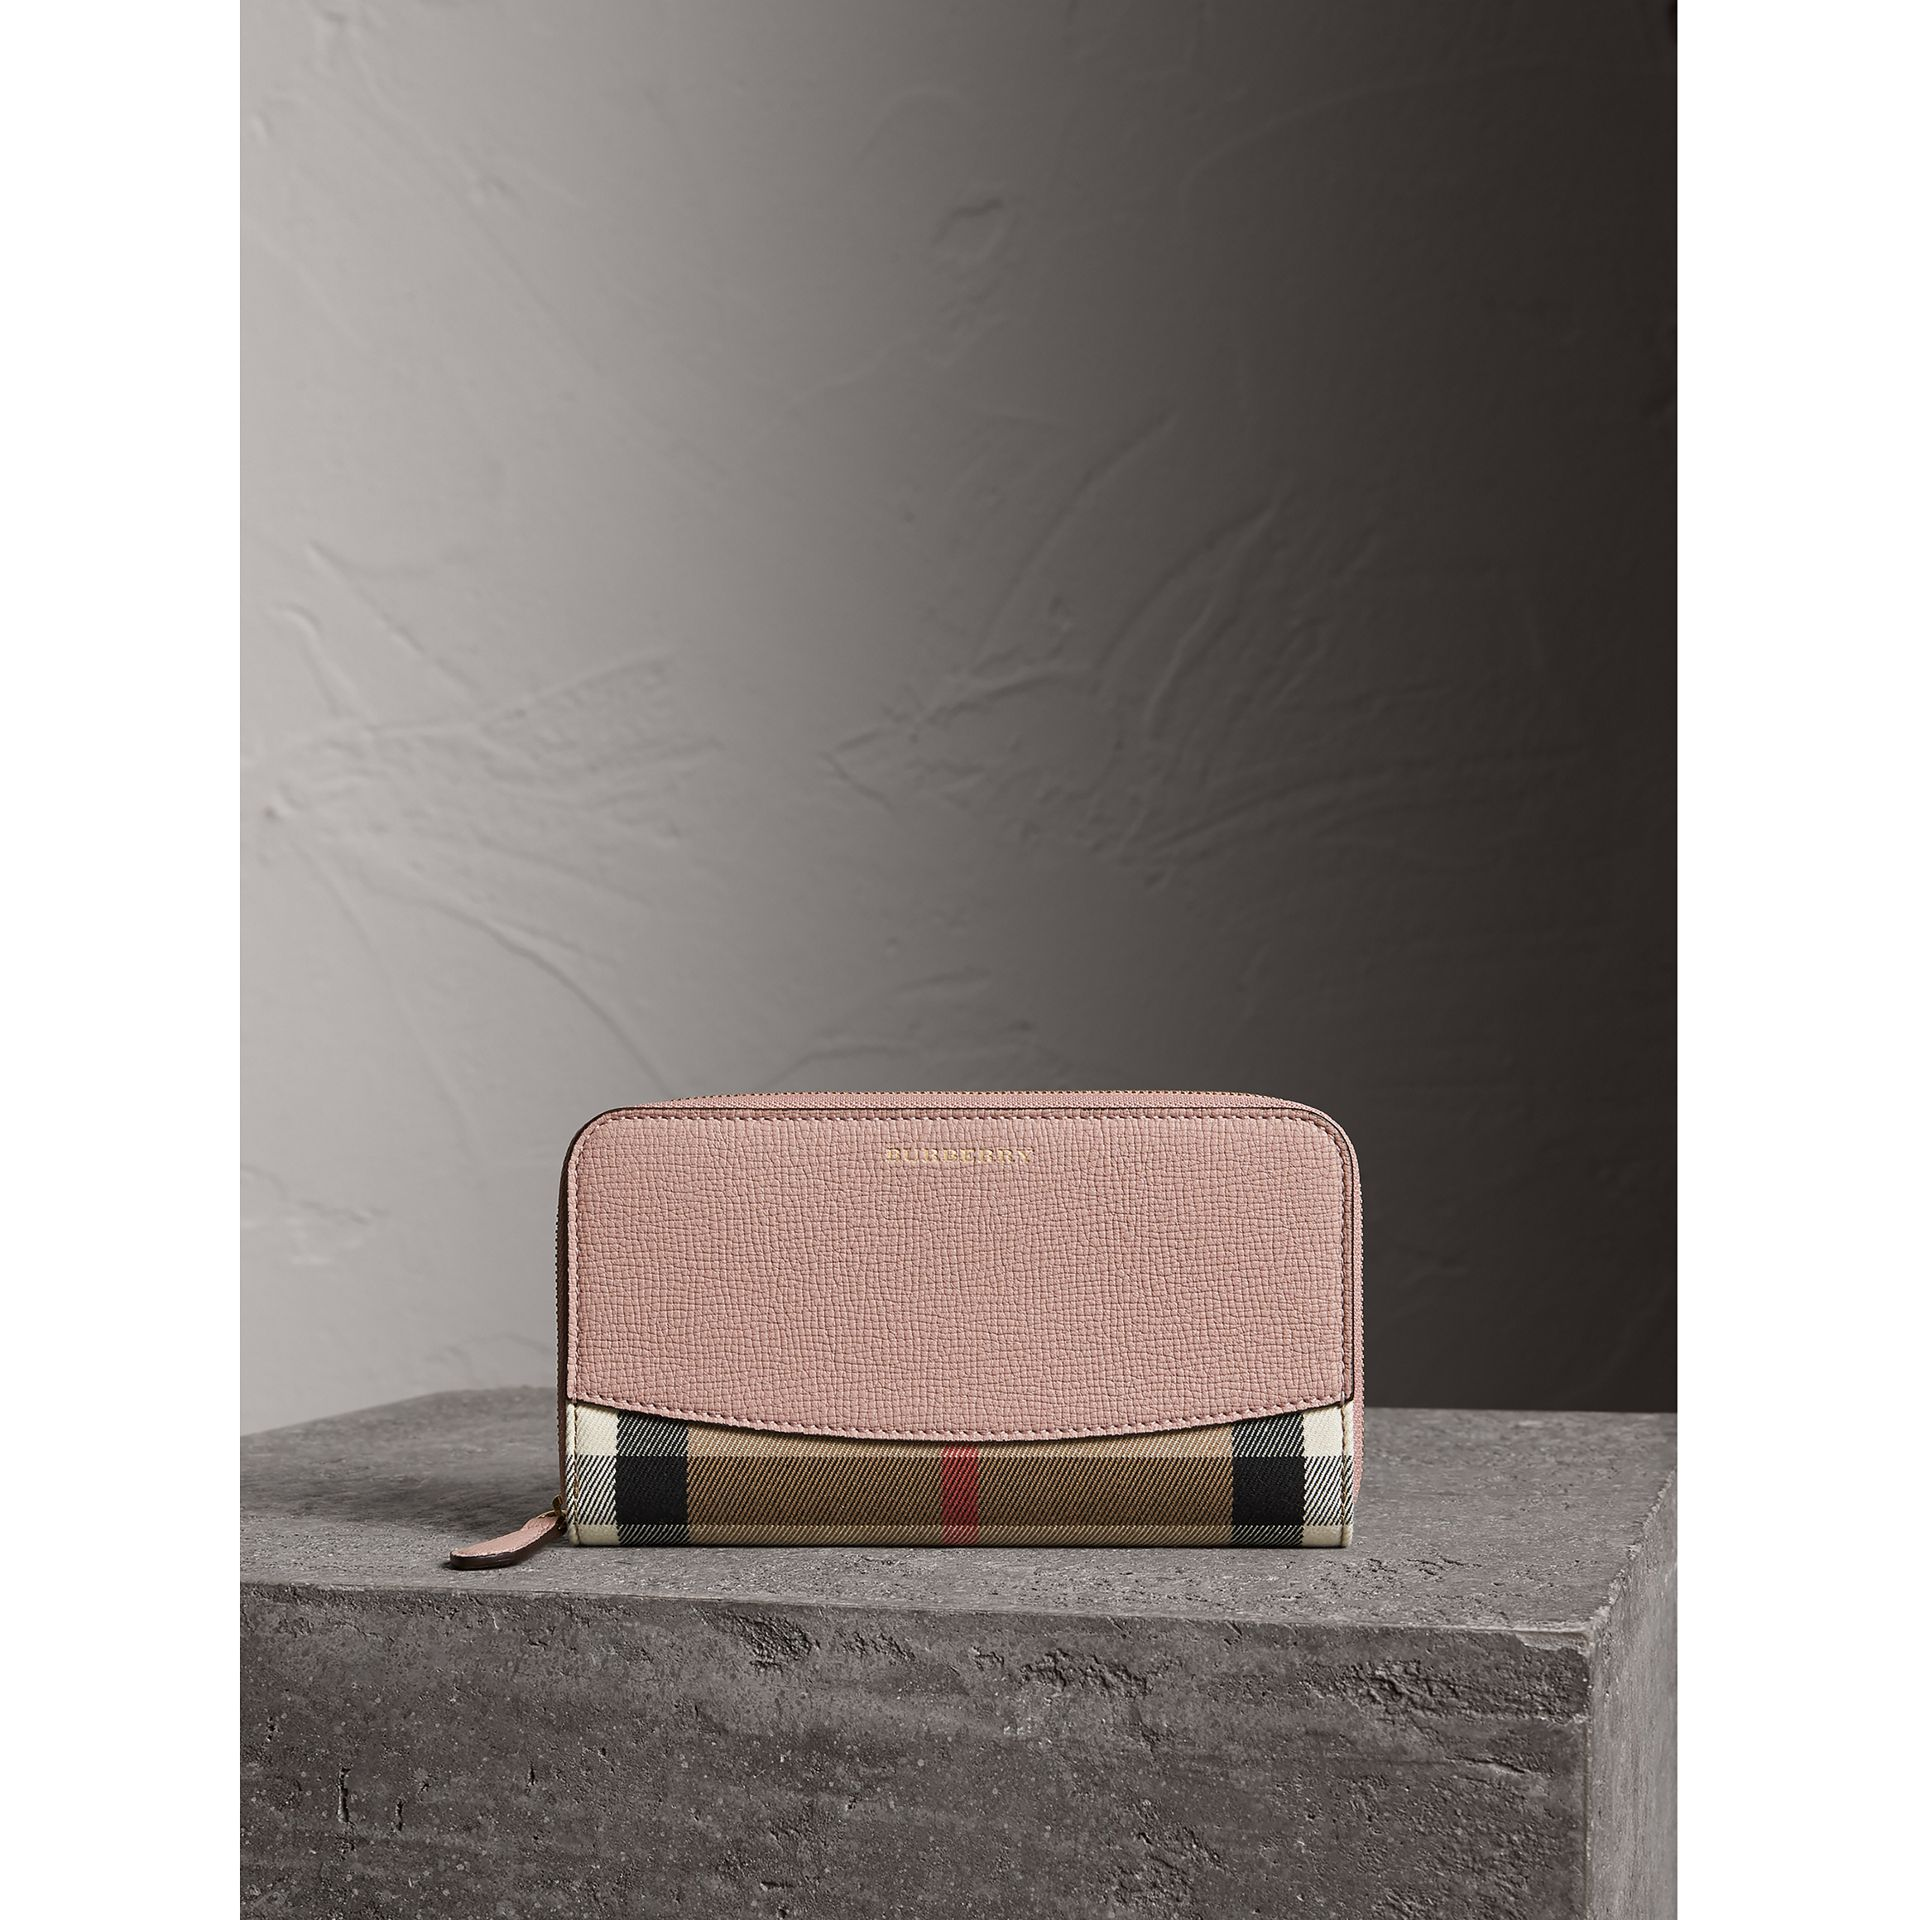 House Check and Leather Ziparound Wallet in Pale Orchid - Women | Burberry Hong Kong - gallery image 5